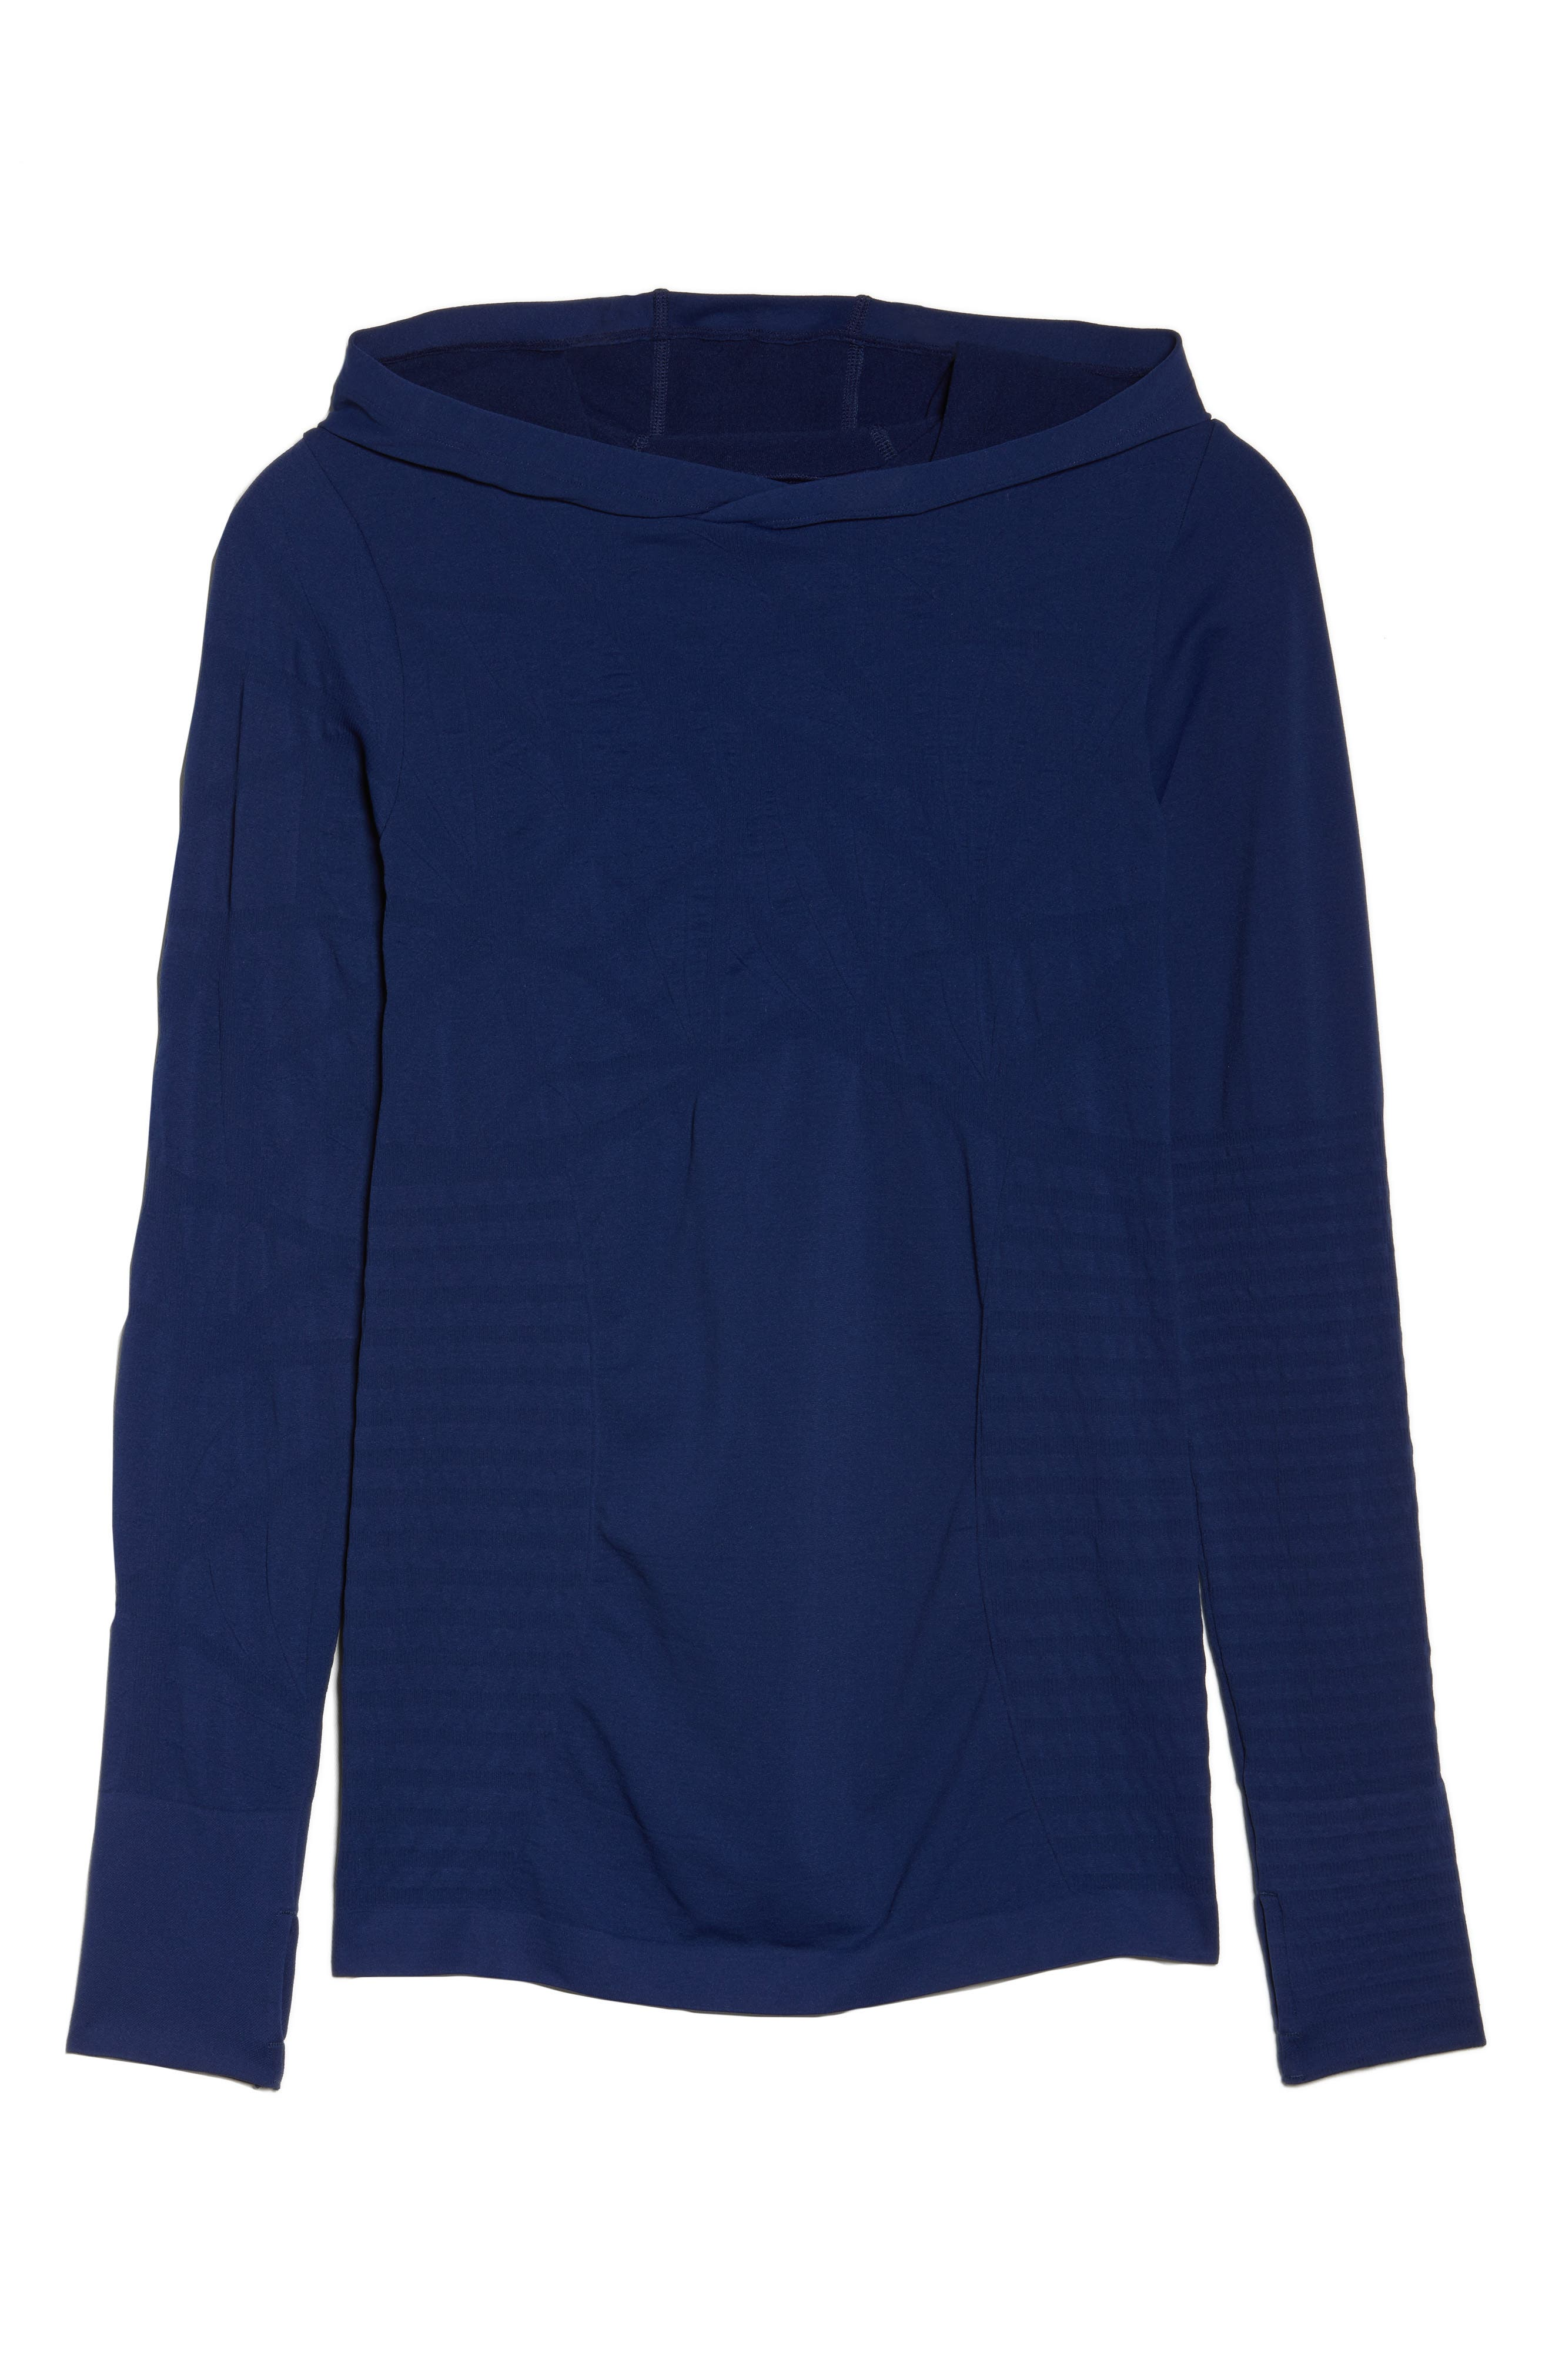 No Boundary Hoodie,                             Alternate thumbnail 7, color,                             Medieval Blue